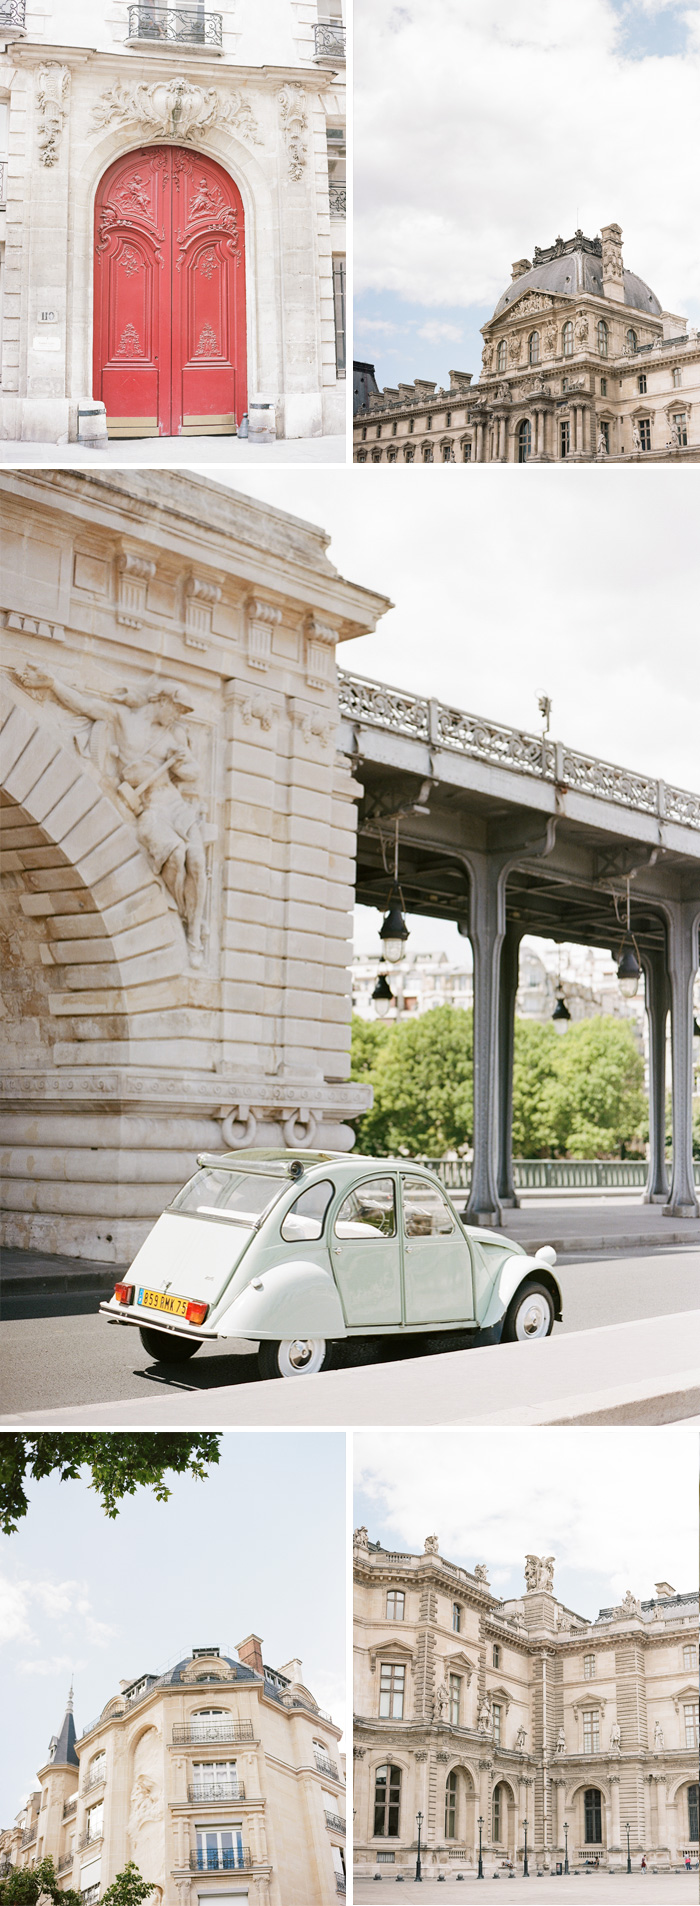 Examples of classic Parisian architecture as well as the Bir Hakeim Bridge; photo by Sylvie GIl